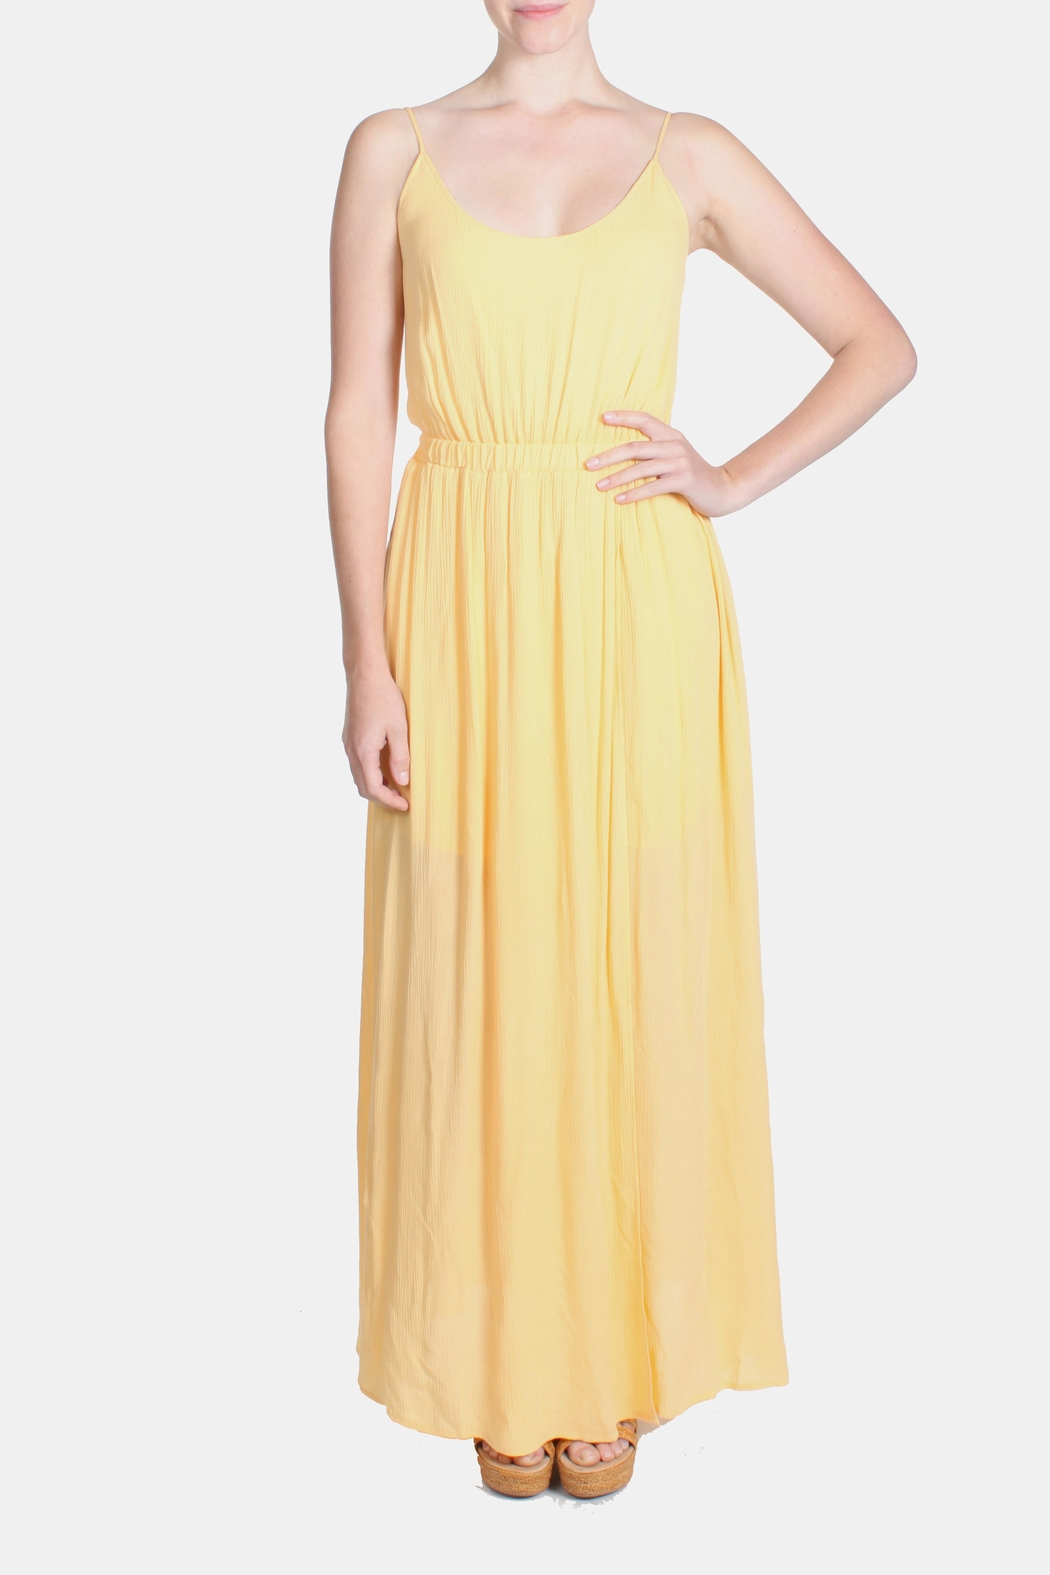 rokoko Yellow Corset Dress - Front Cropped Image